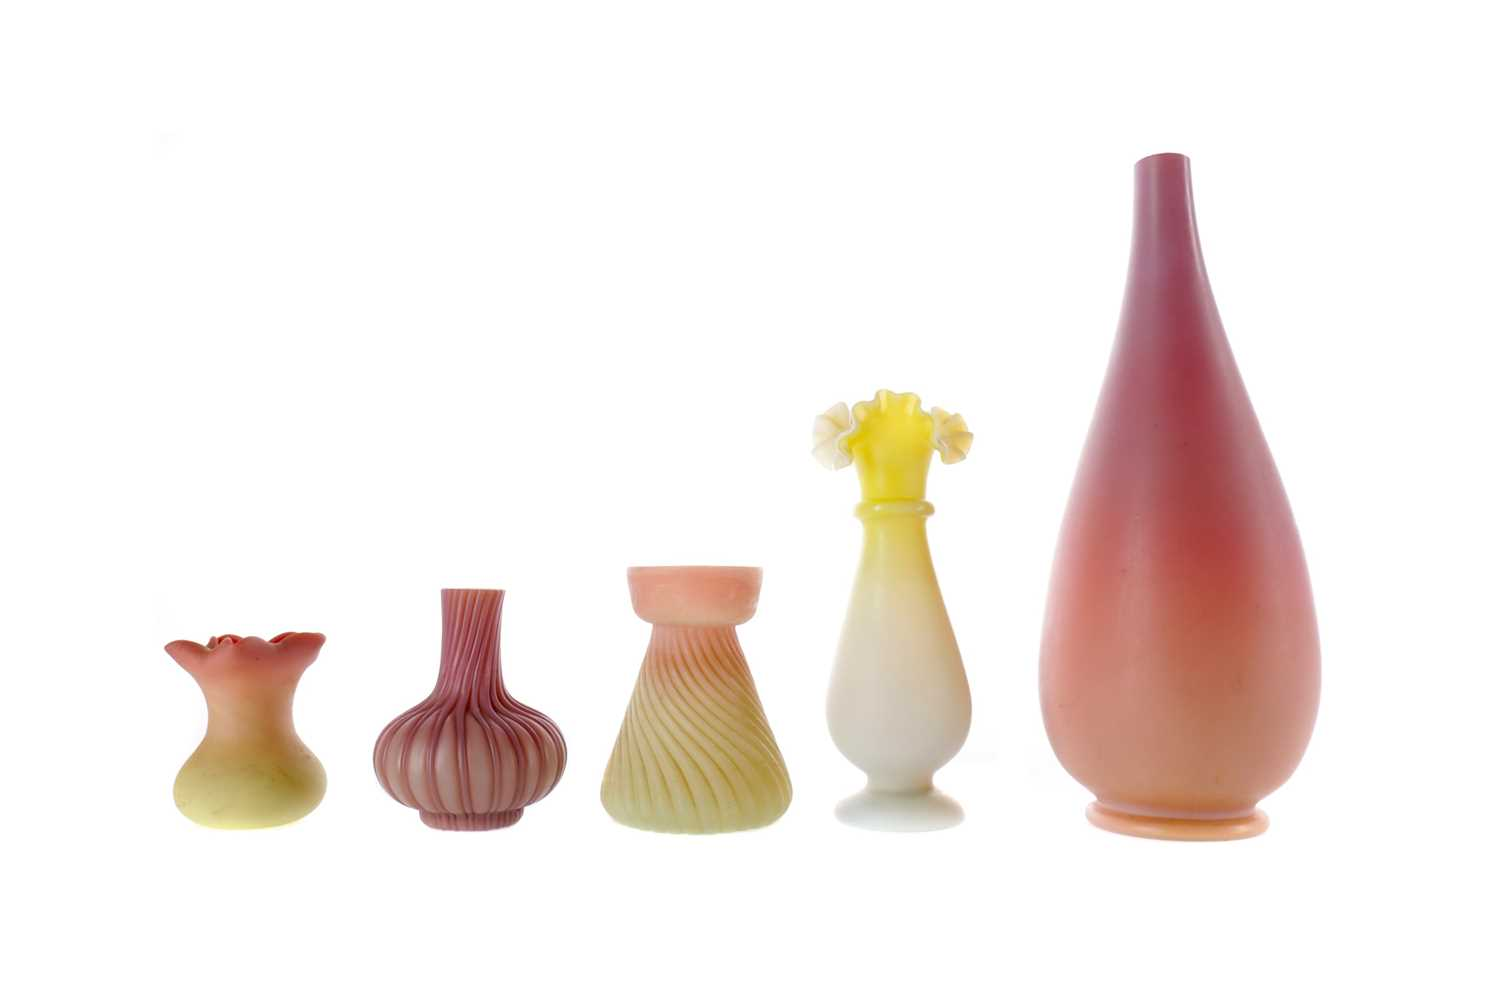 Lot 1079 - A VICTORIAN THOMAS WEBB & SONS BURMESE SATIN GLASS VASE ALONG WITH FOUR OTHERS